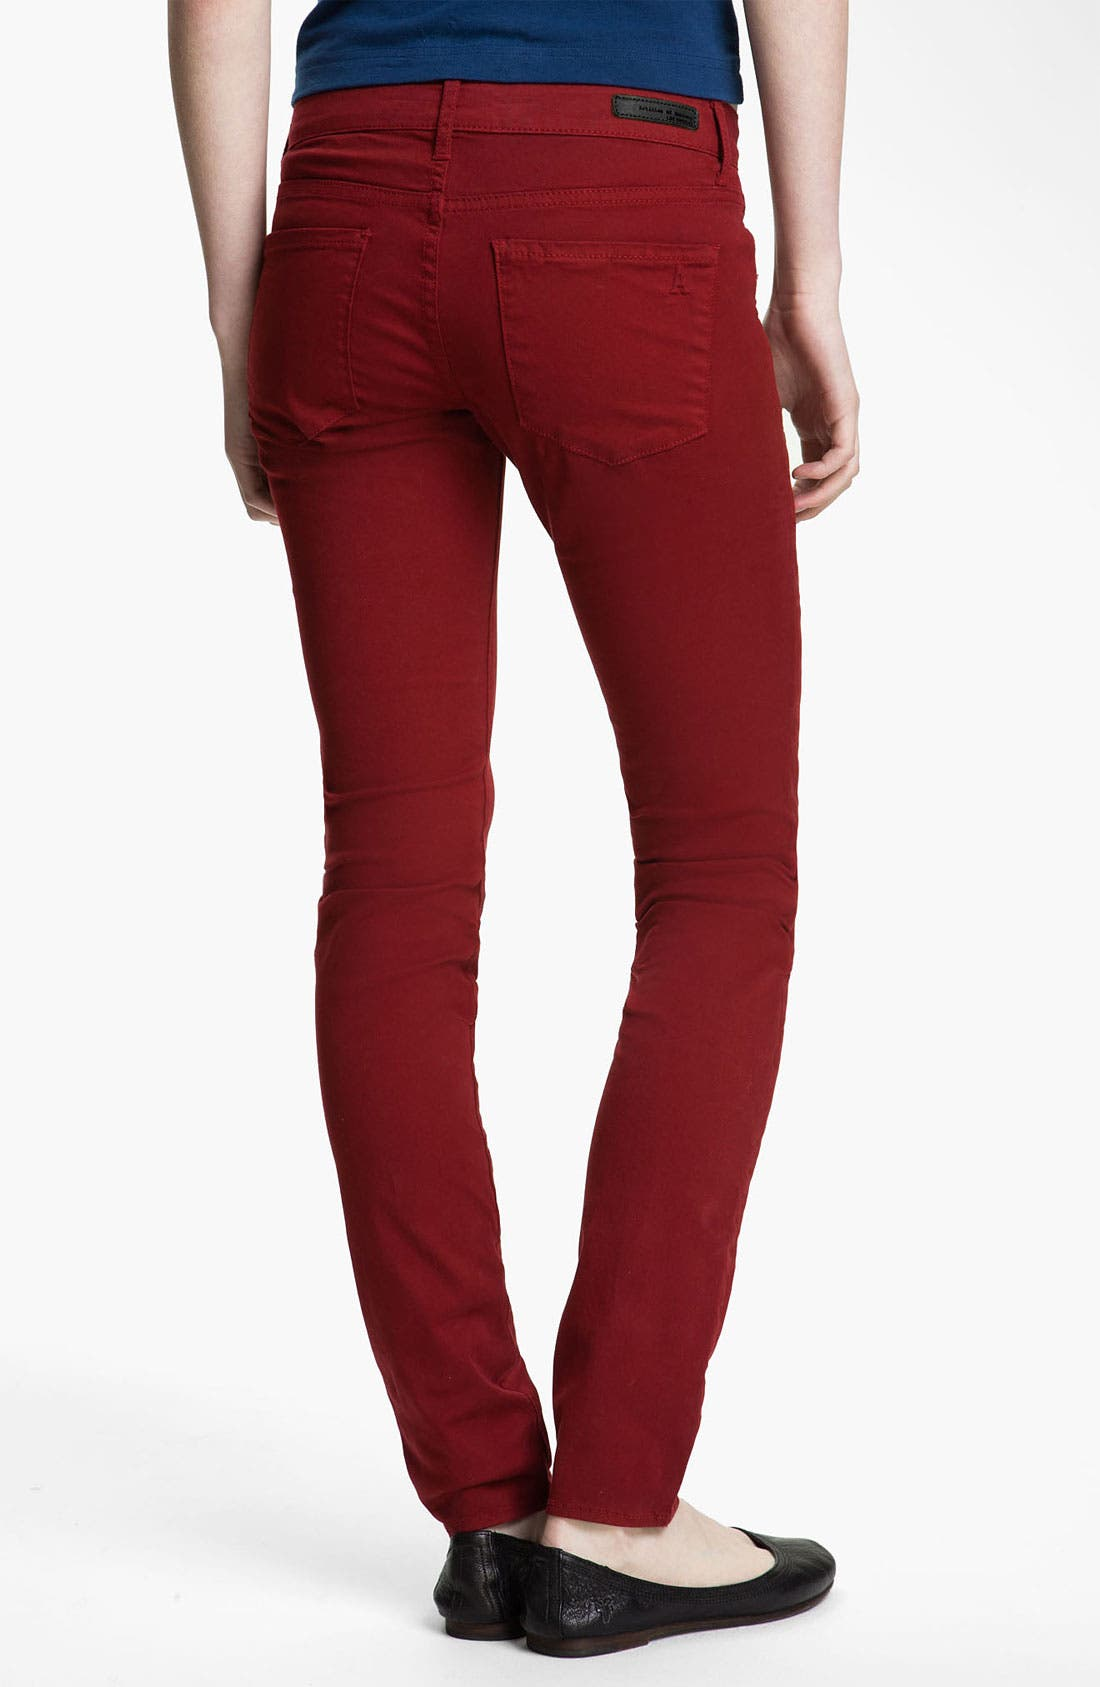 Alternate Image 1 Selected - Articles of Society 'Mya' Skinny Jeans (Scarlet) (Juniors)